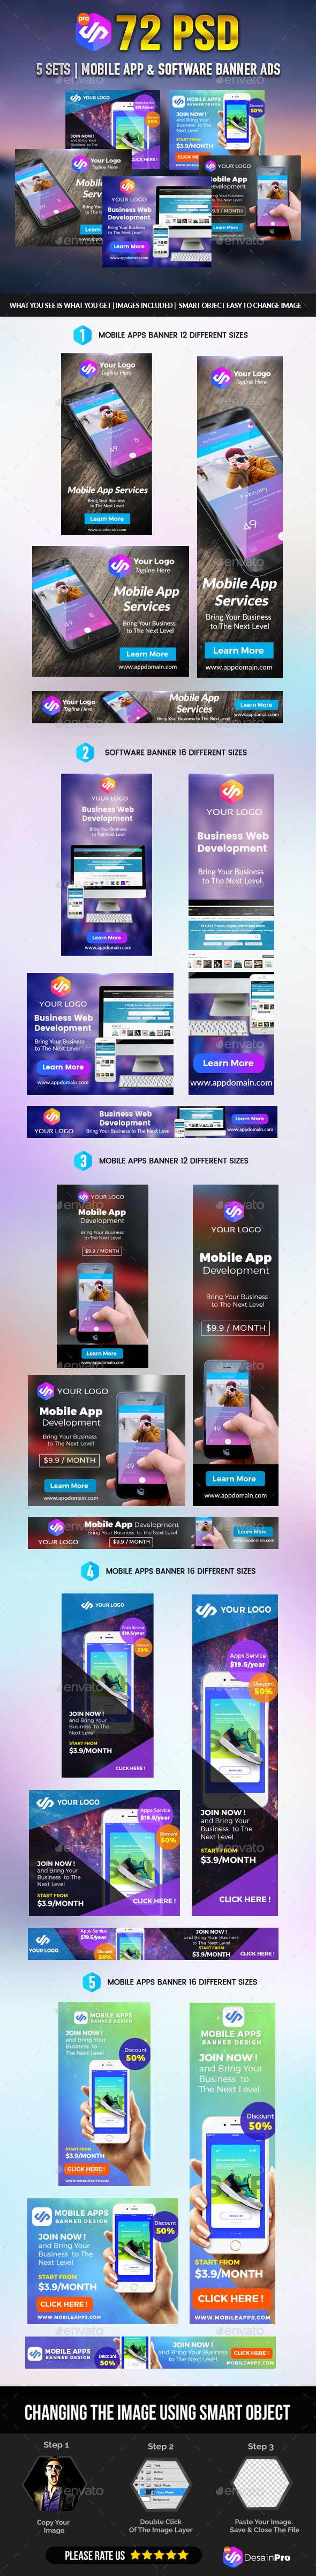 Mobile Apps Banner Pack - Banners & Ads Web Elements